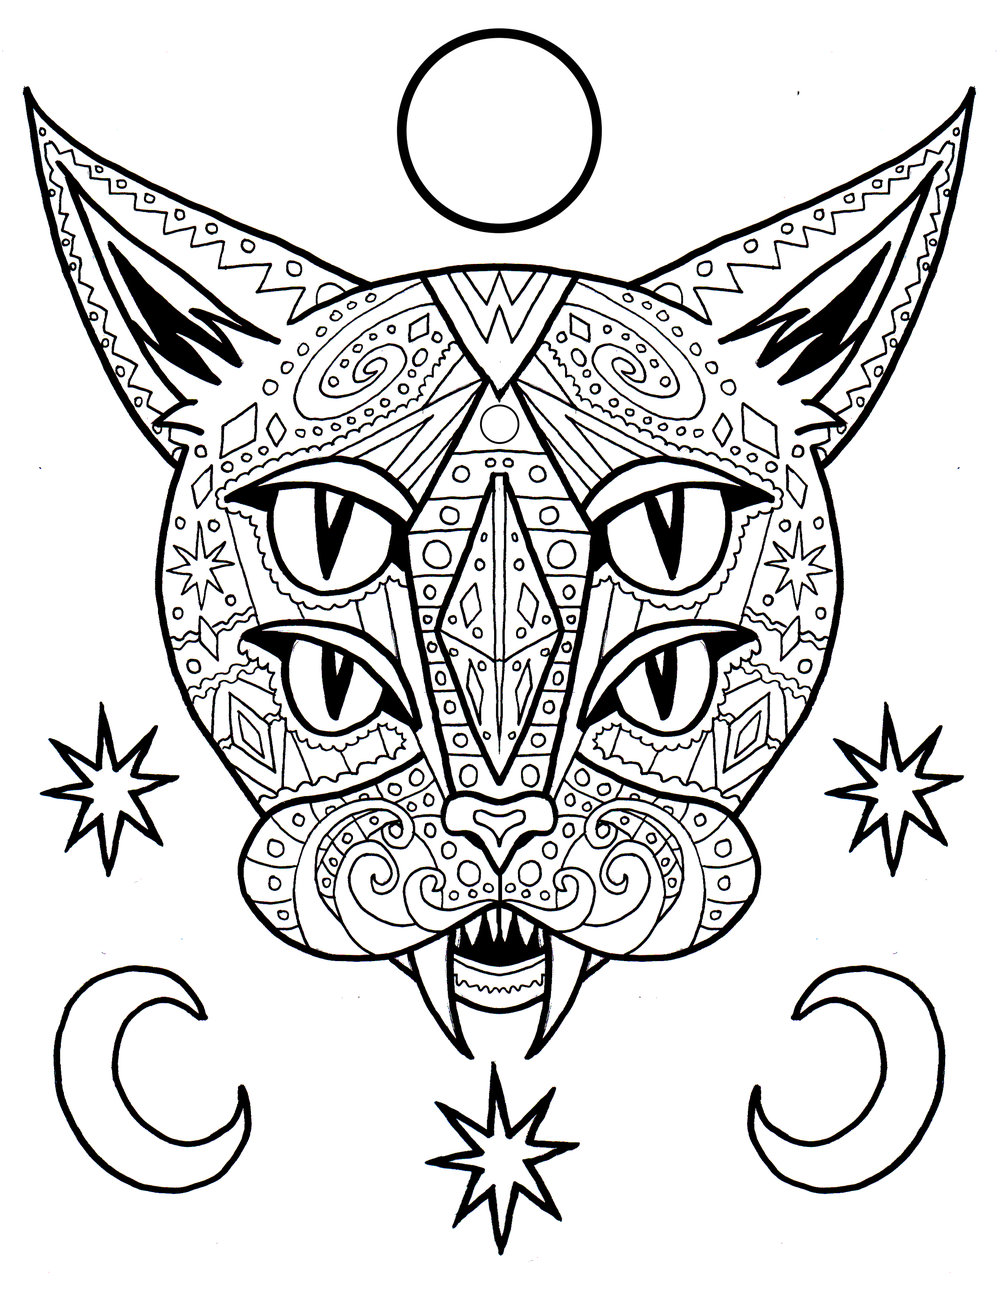 cat-coloring-page.jpg